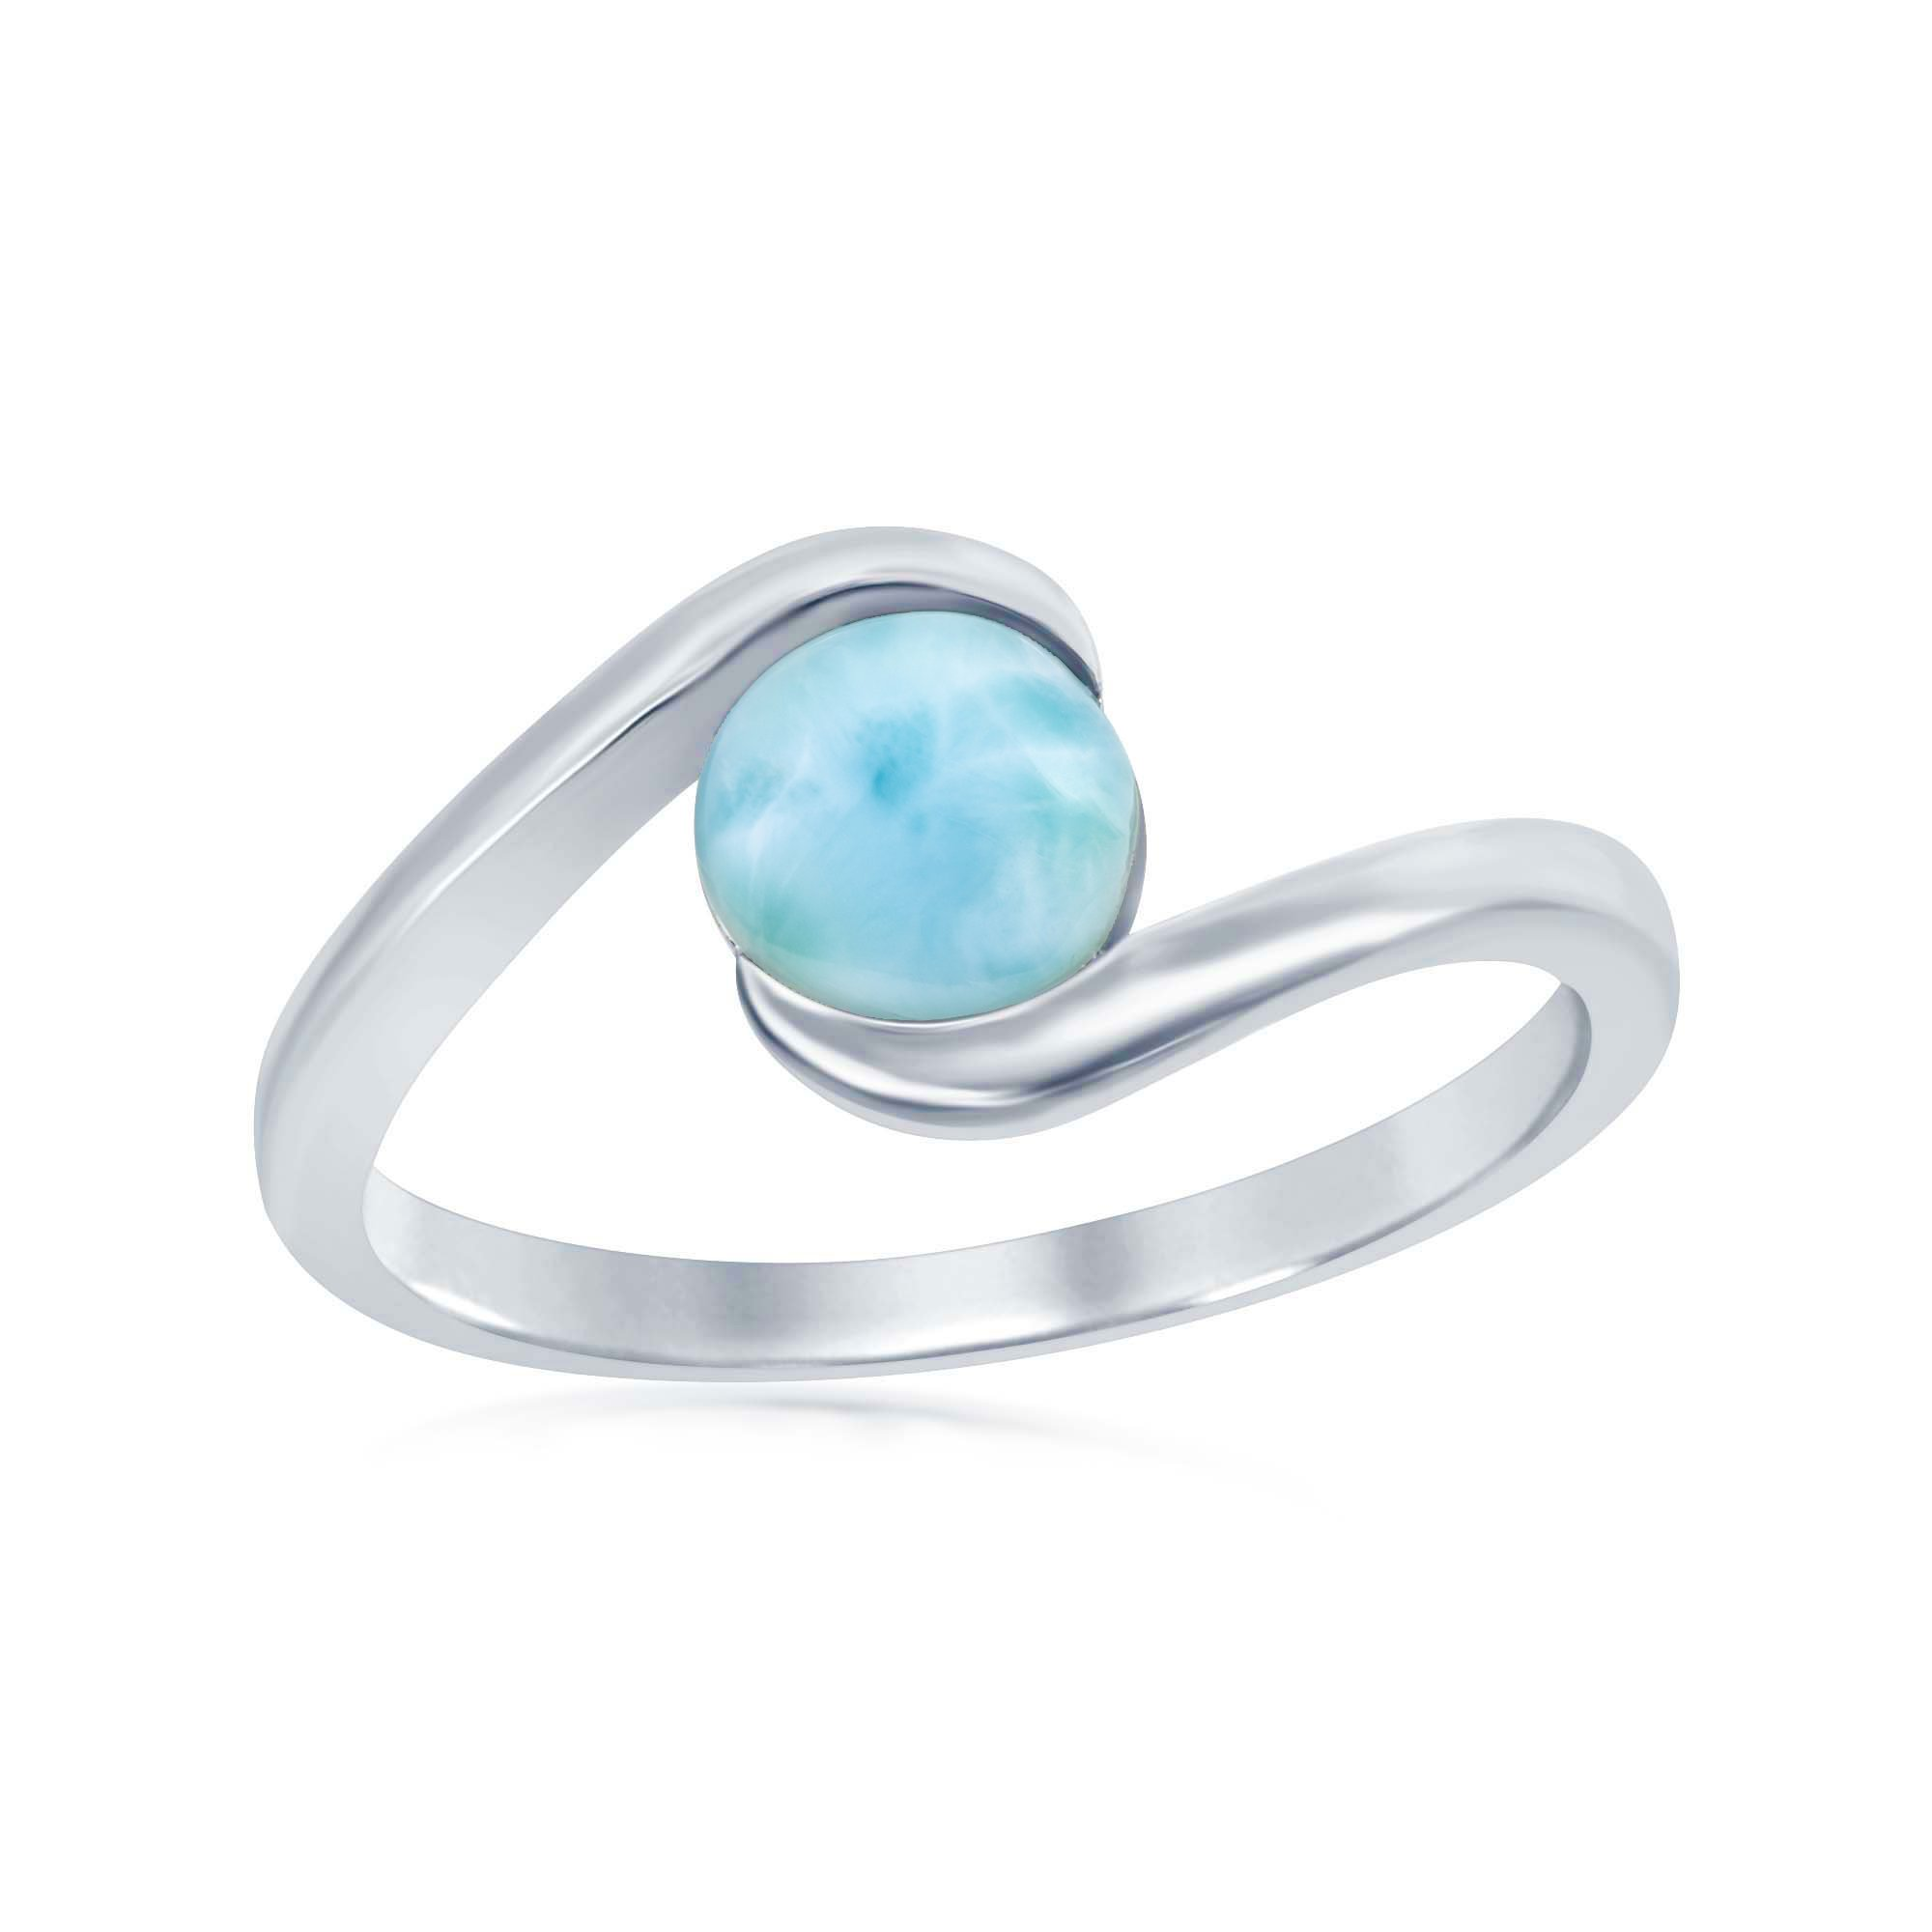 Beaux Bijoux Sterling Silver Natural Round Larimar Stone Swirl Design Ring